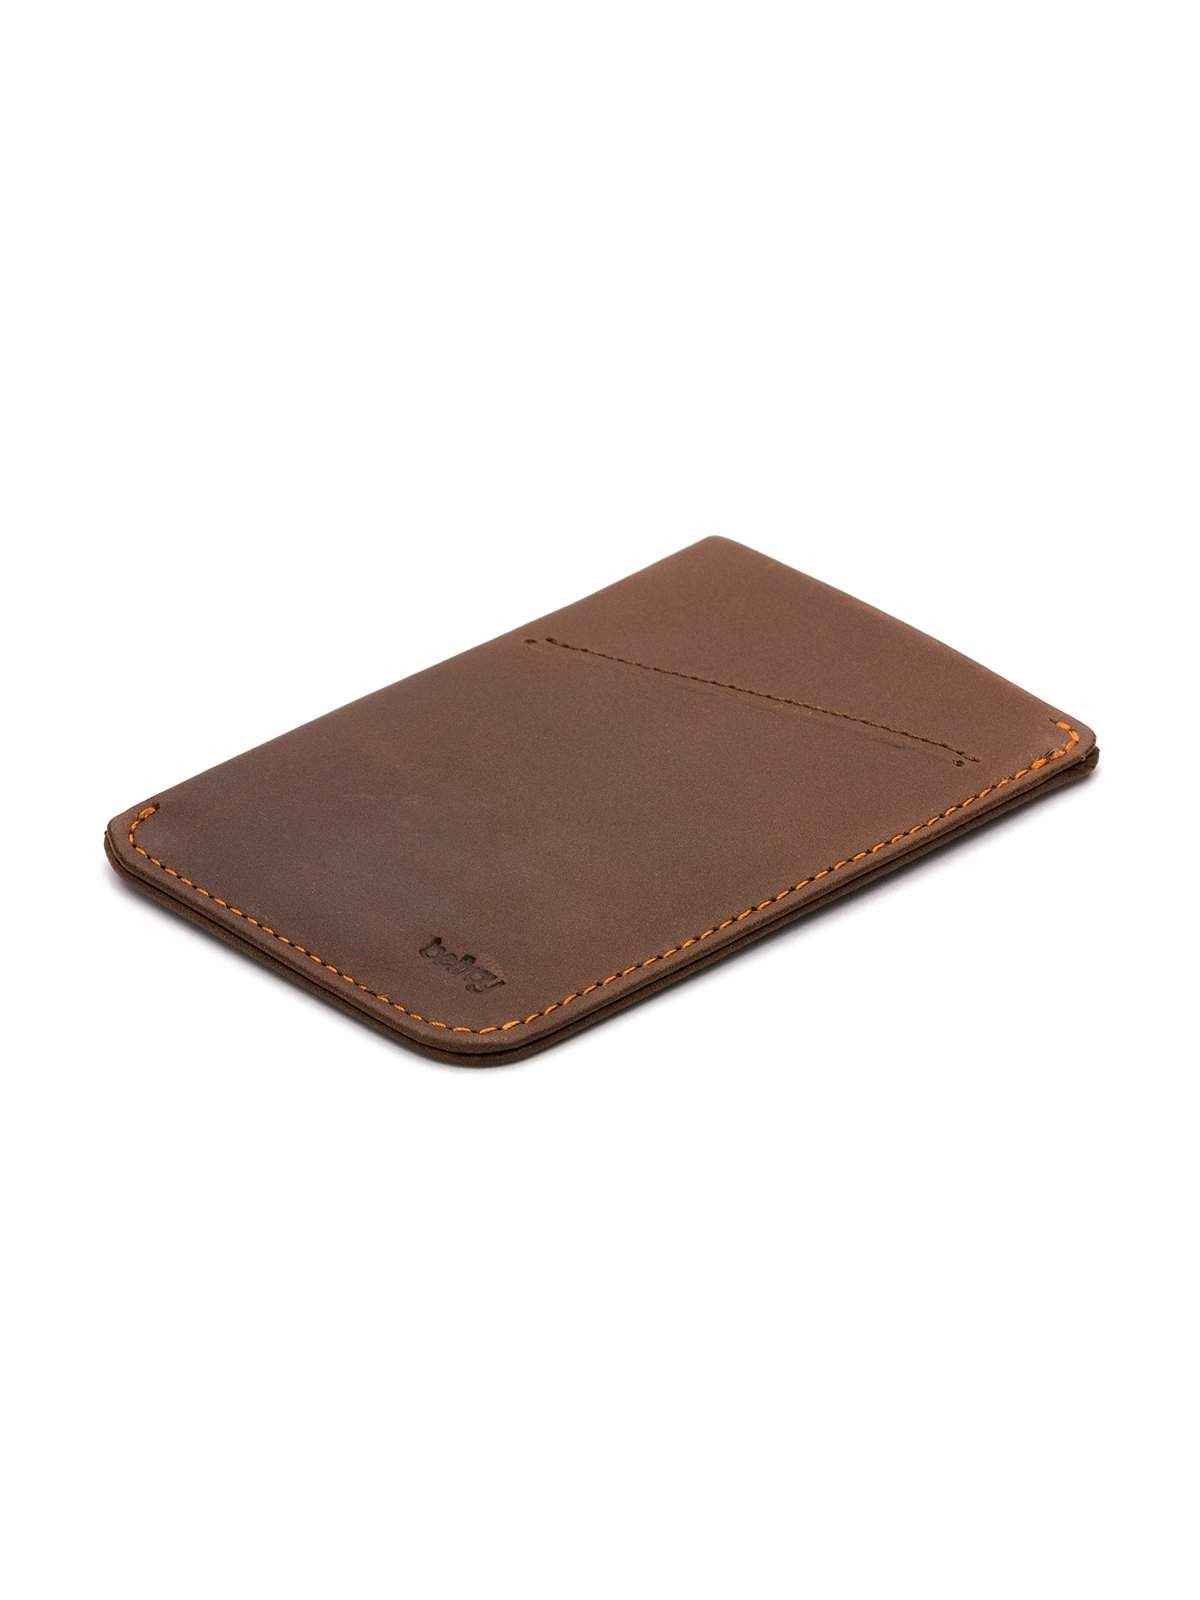 Bellroy Card Sleeve Cocoa - MORE by Morello Indonesia